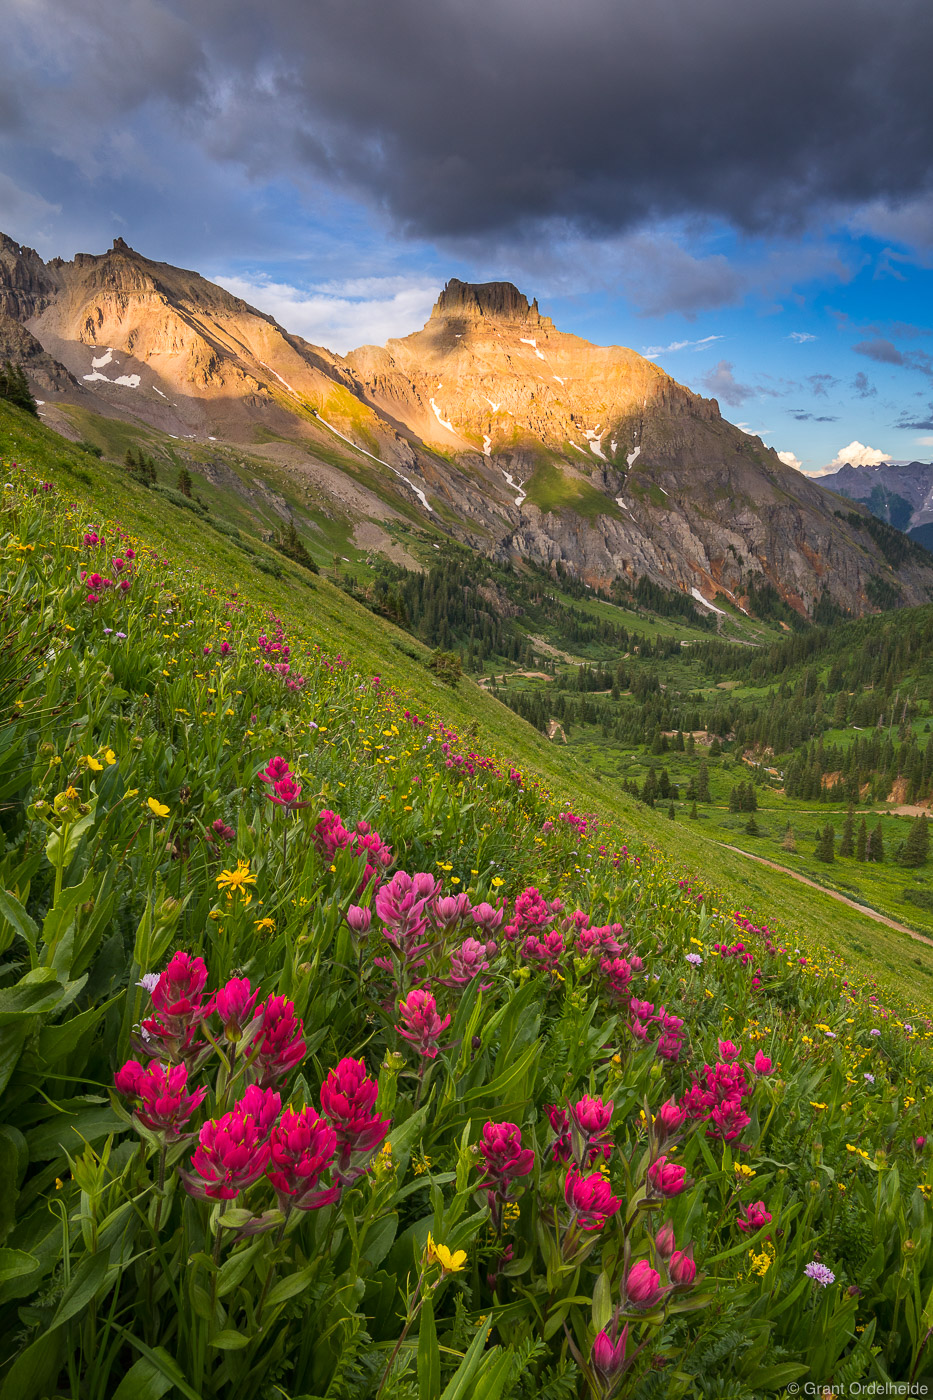 yankee, boy, basin, ouray, colorado, wildflowers, high, apline, photo